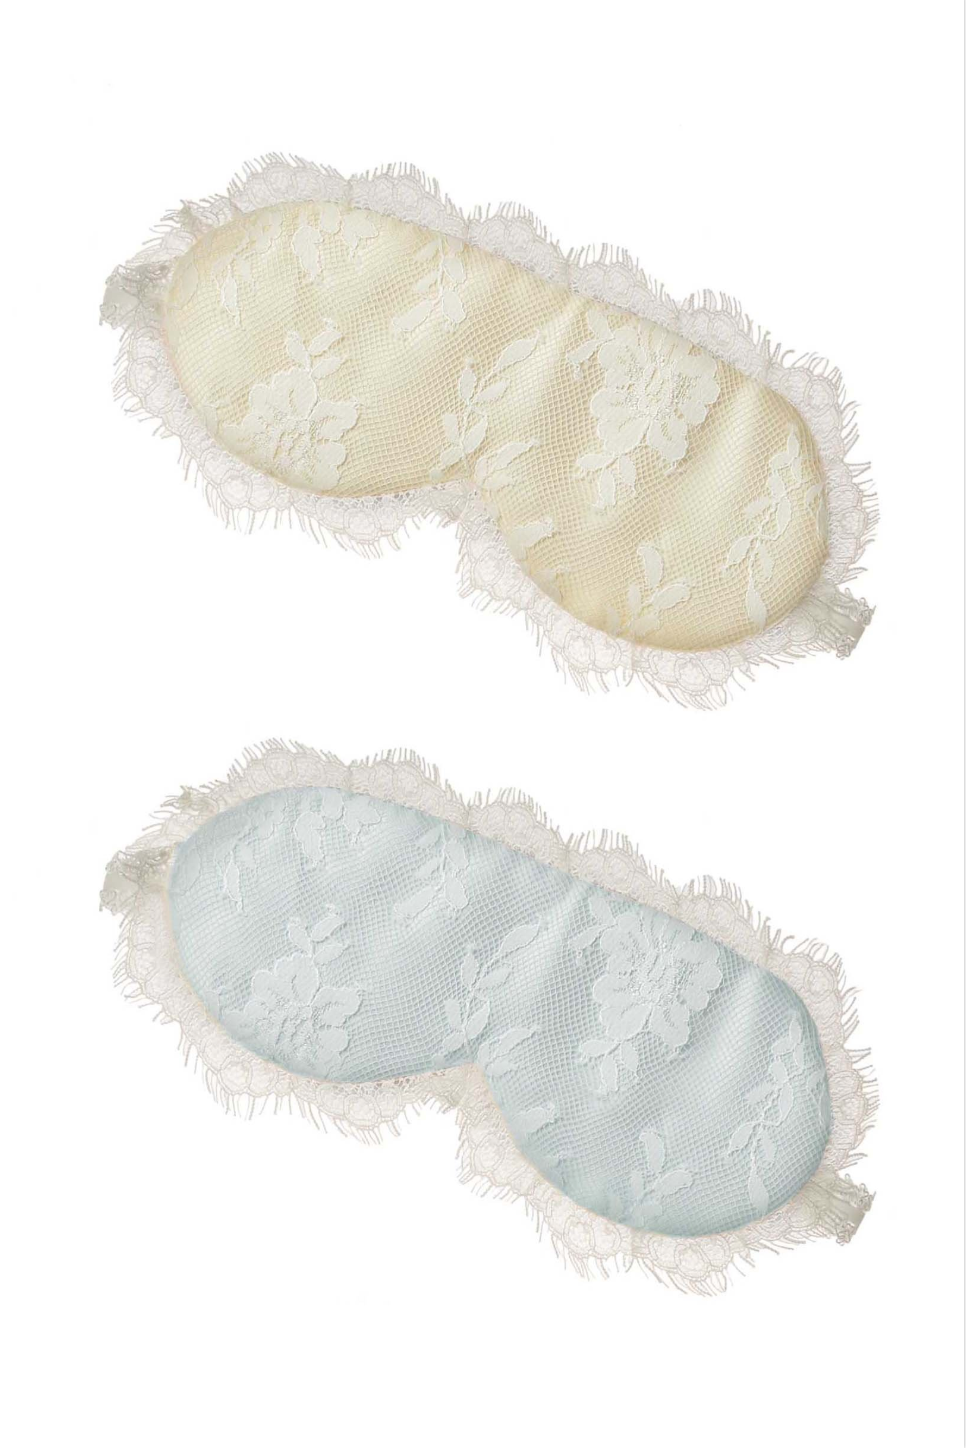 Swan Queen Sleep Mask (Ivory, Blush, Champagne,Blue)